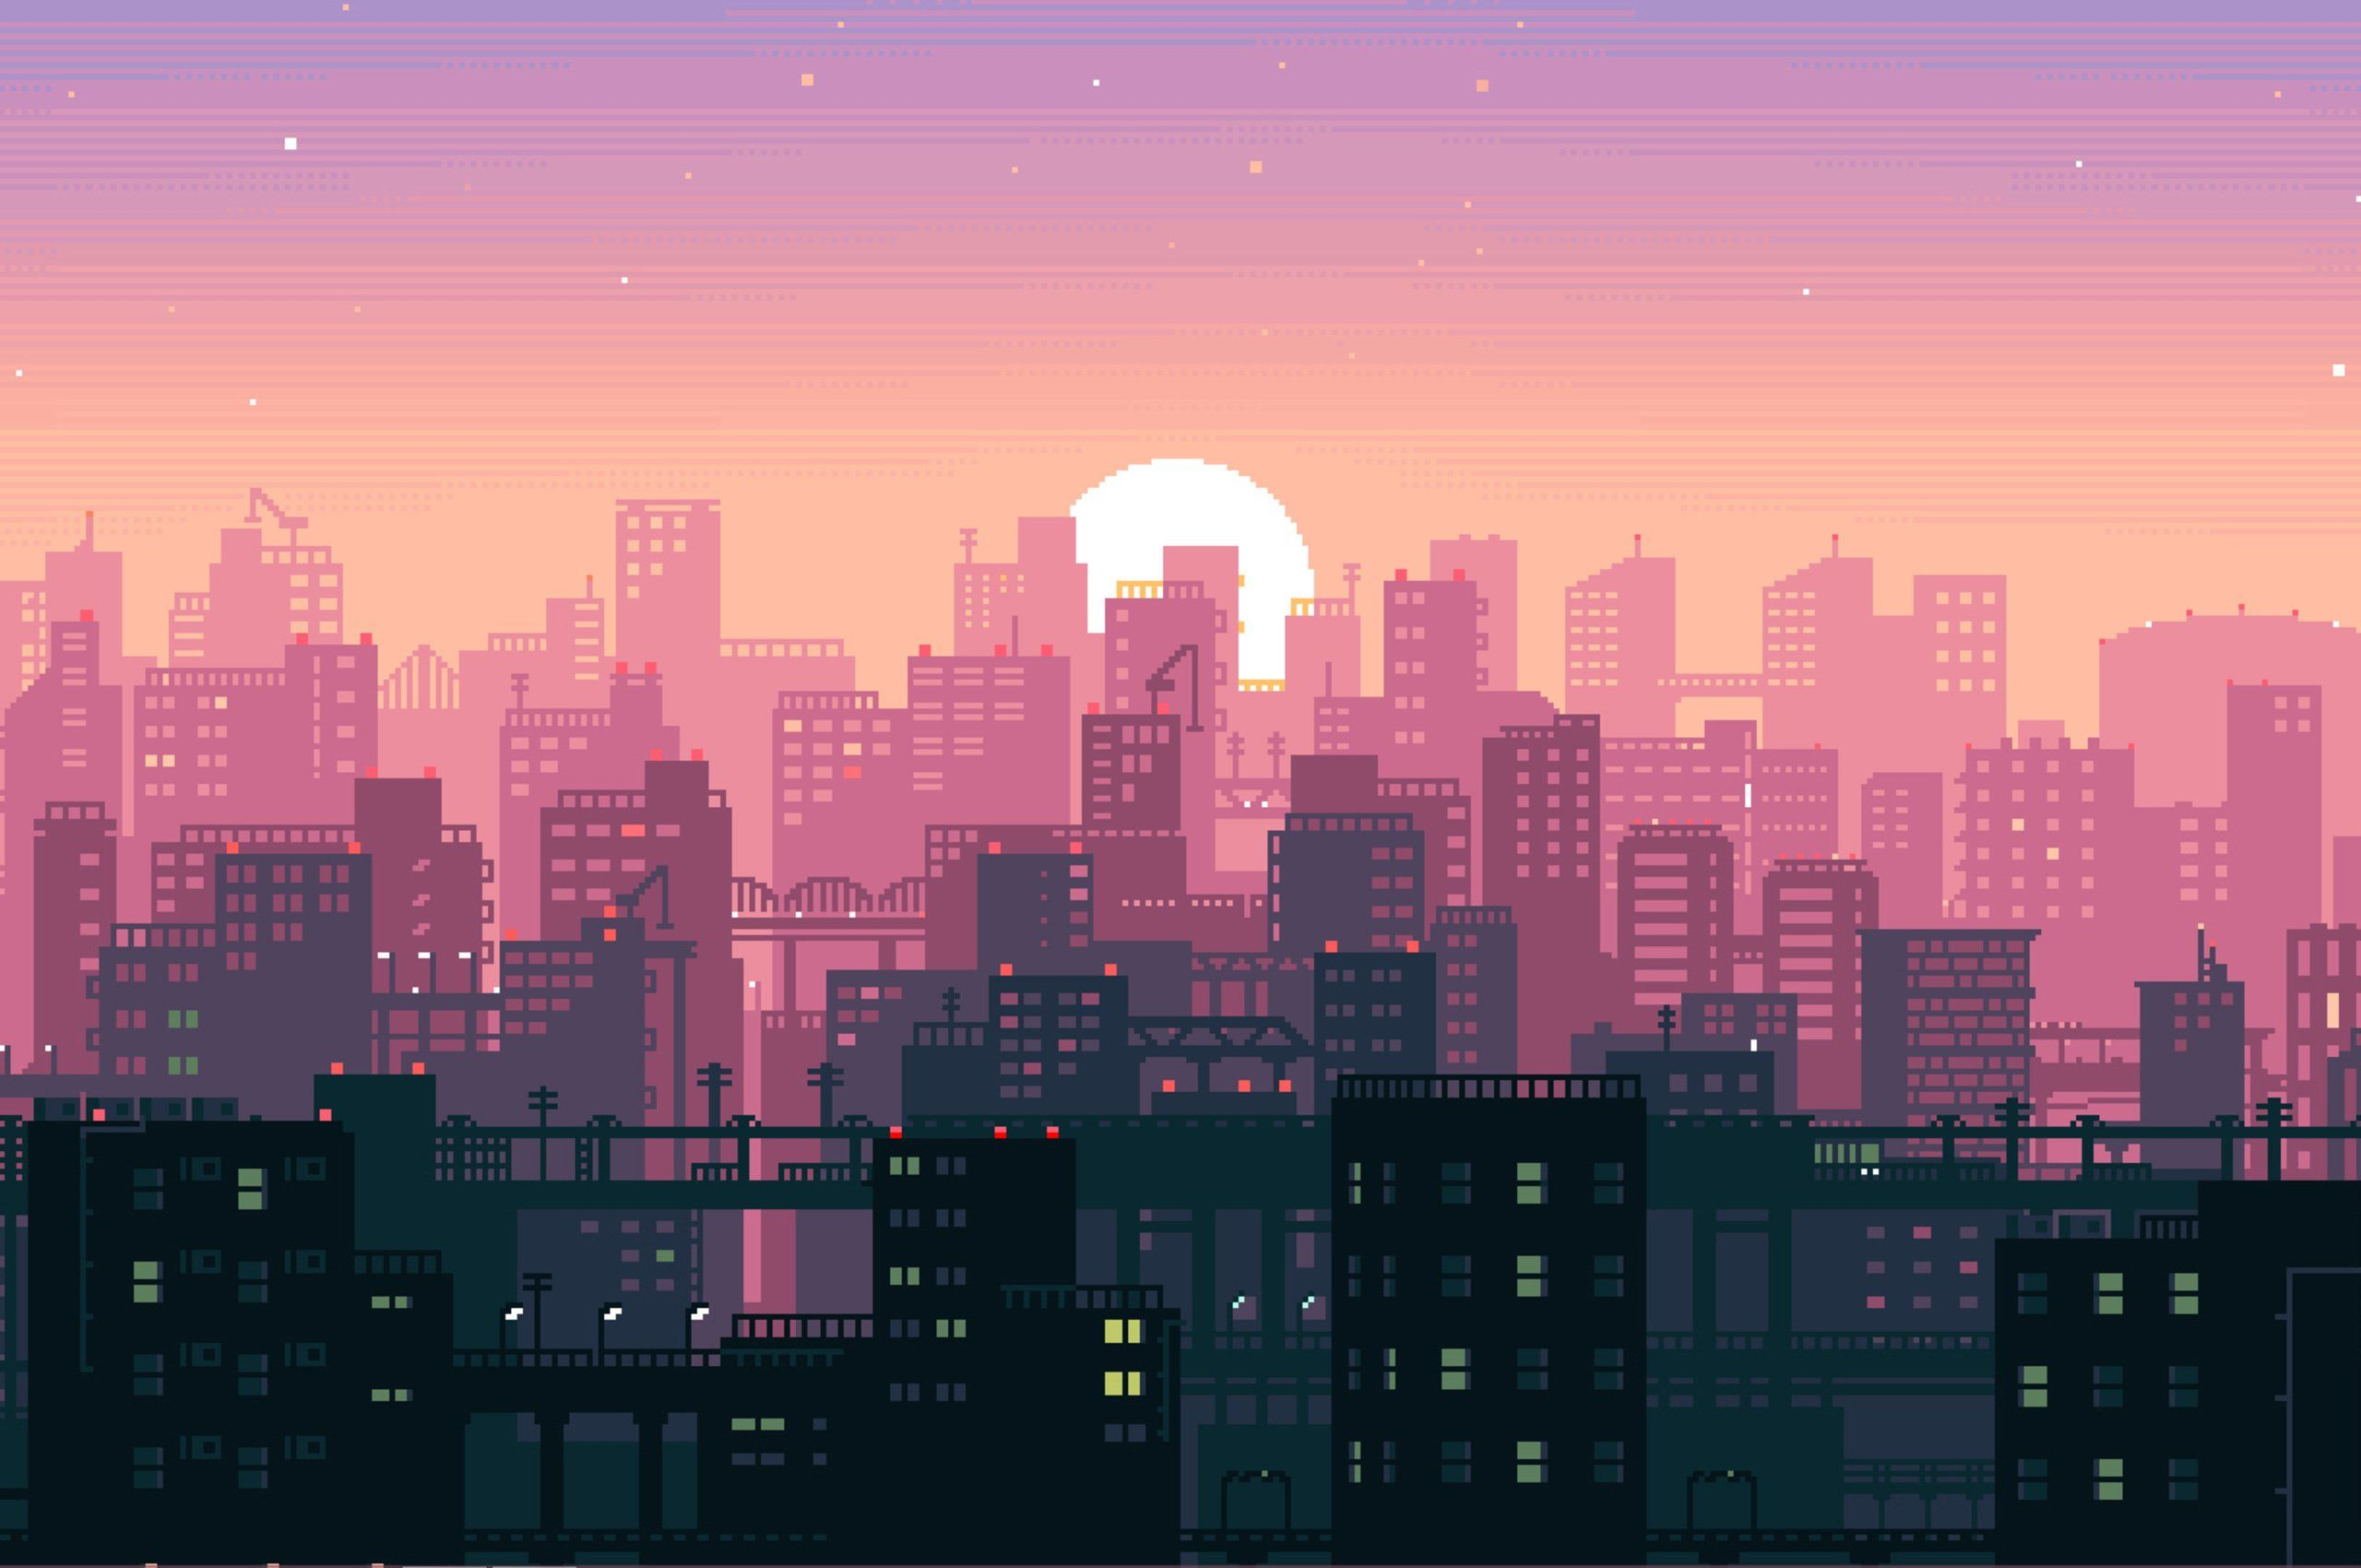 8 Bit Sunset Hd Wallpaper Aesthetic Desktop Wallpaper Desktop Wallpaper Art Pixel Art Background